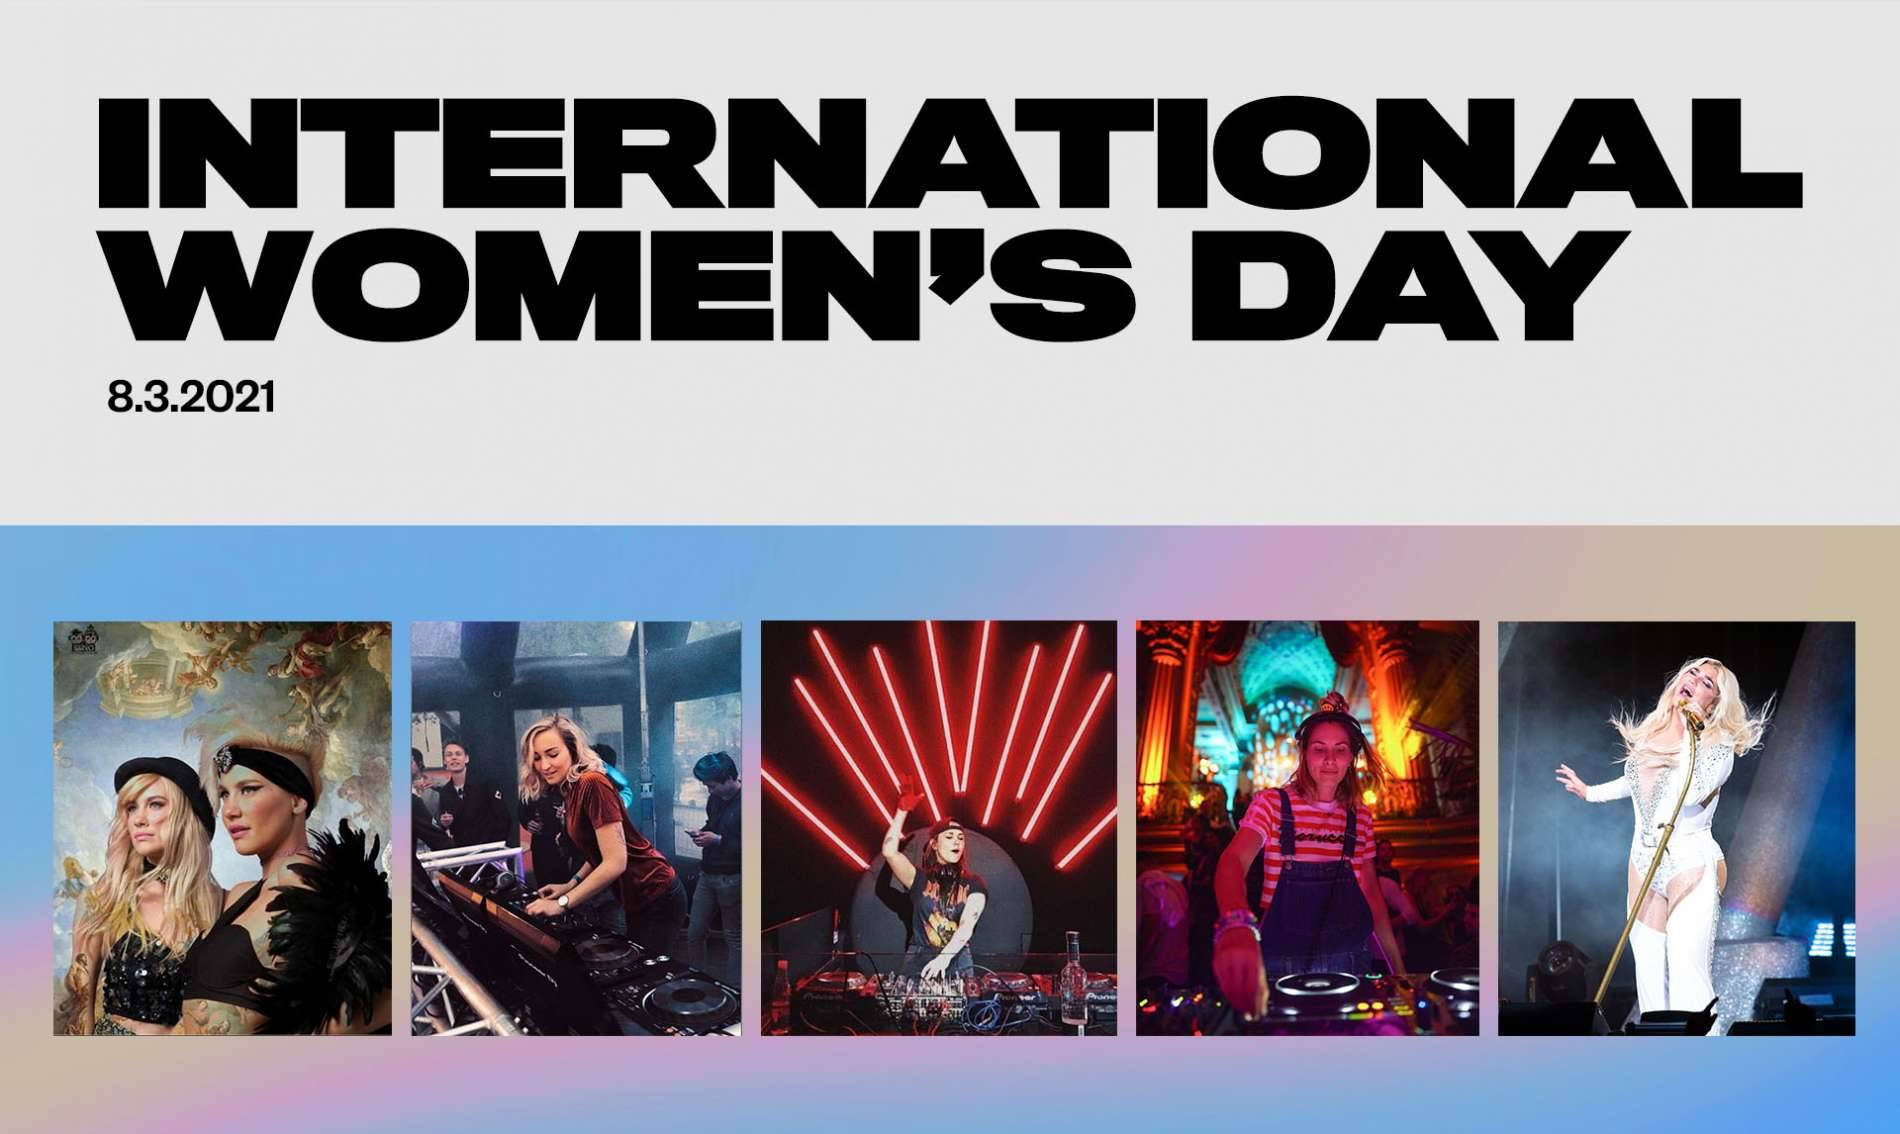 5 FEMALE ARTISTS TO LOOK OUT FOR ON INTERNATIONAL WOMEN'S DAY